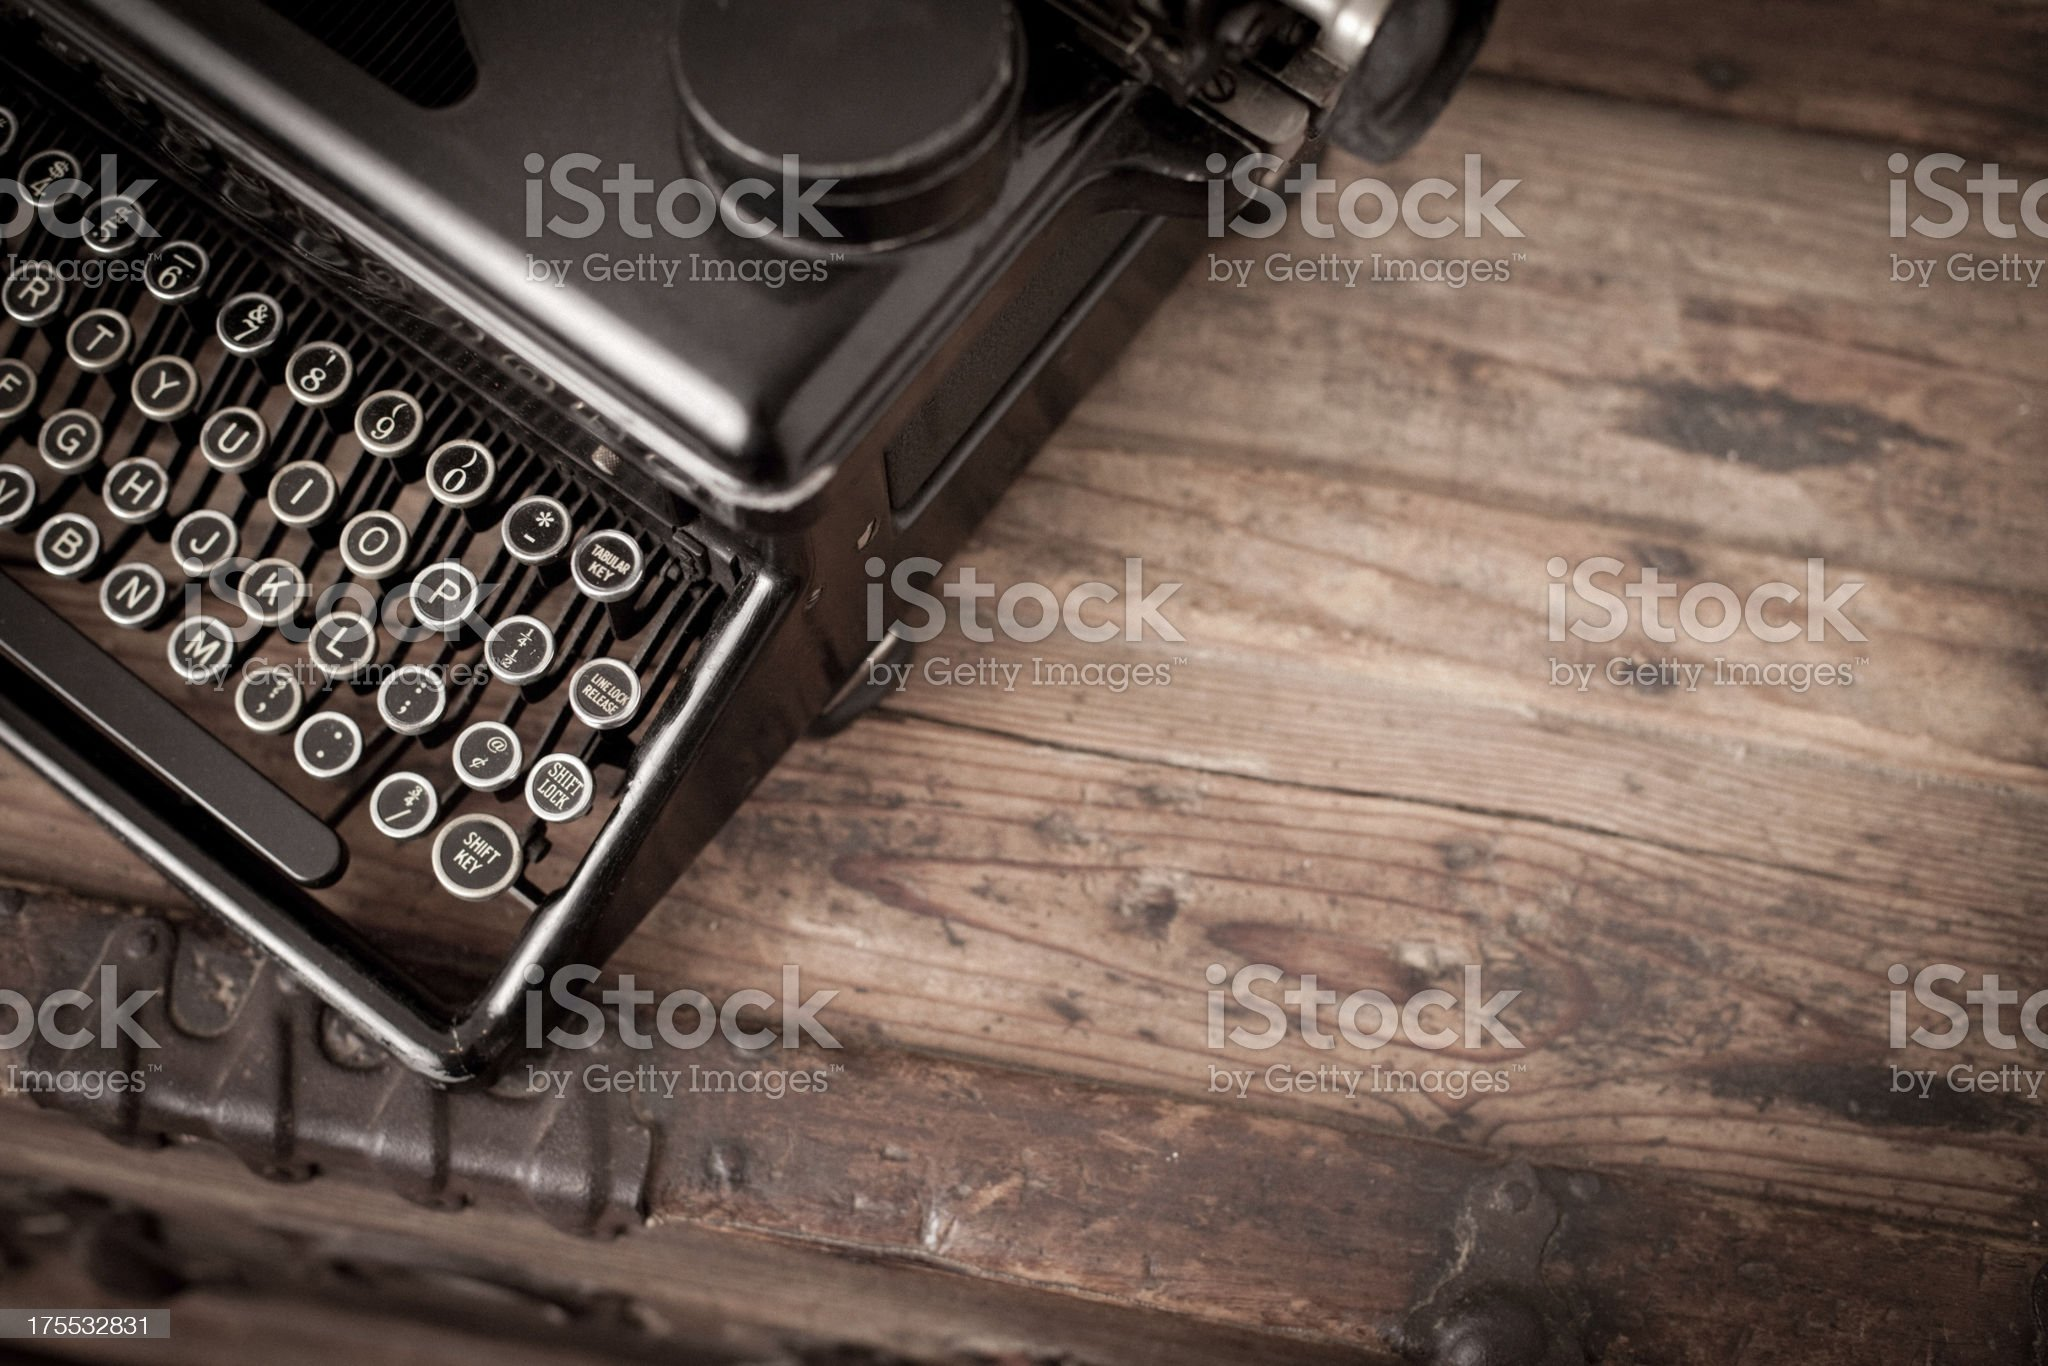 Vintage Black, Manual Typewriter on Wood Trunk, With Copy Space royalty-free stock photo